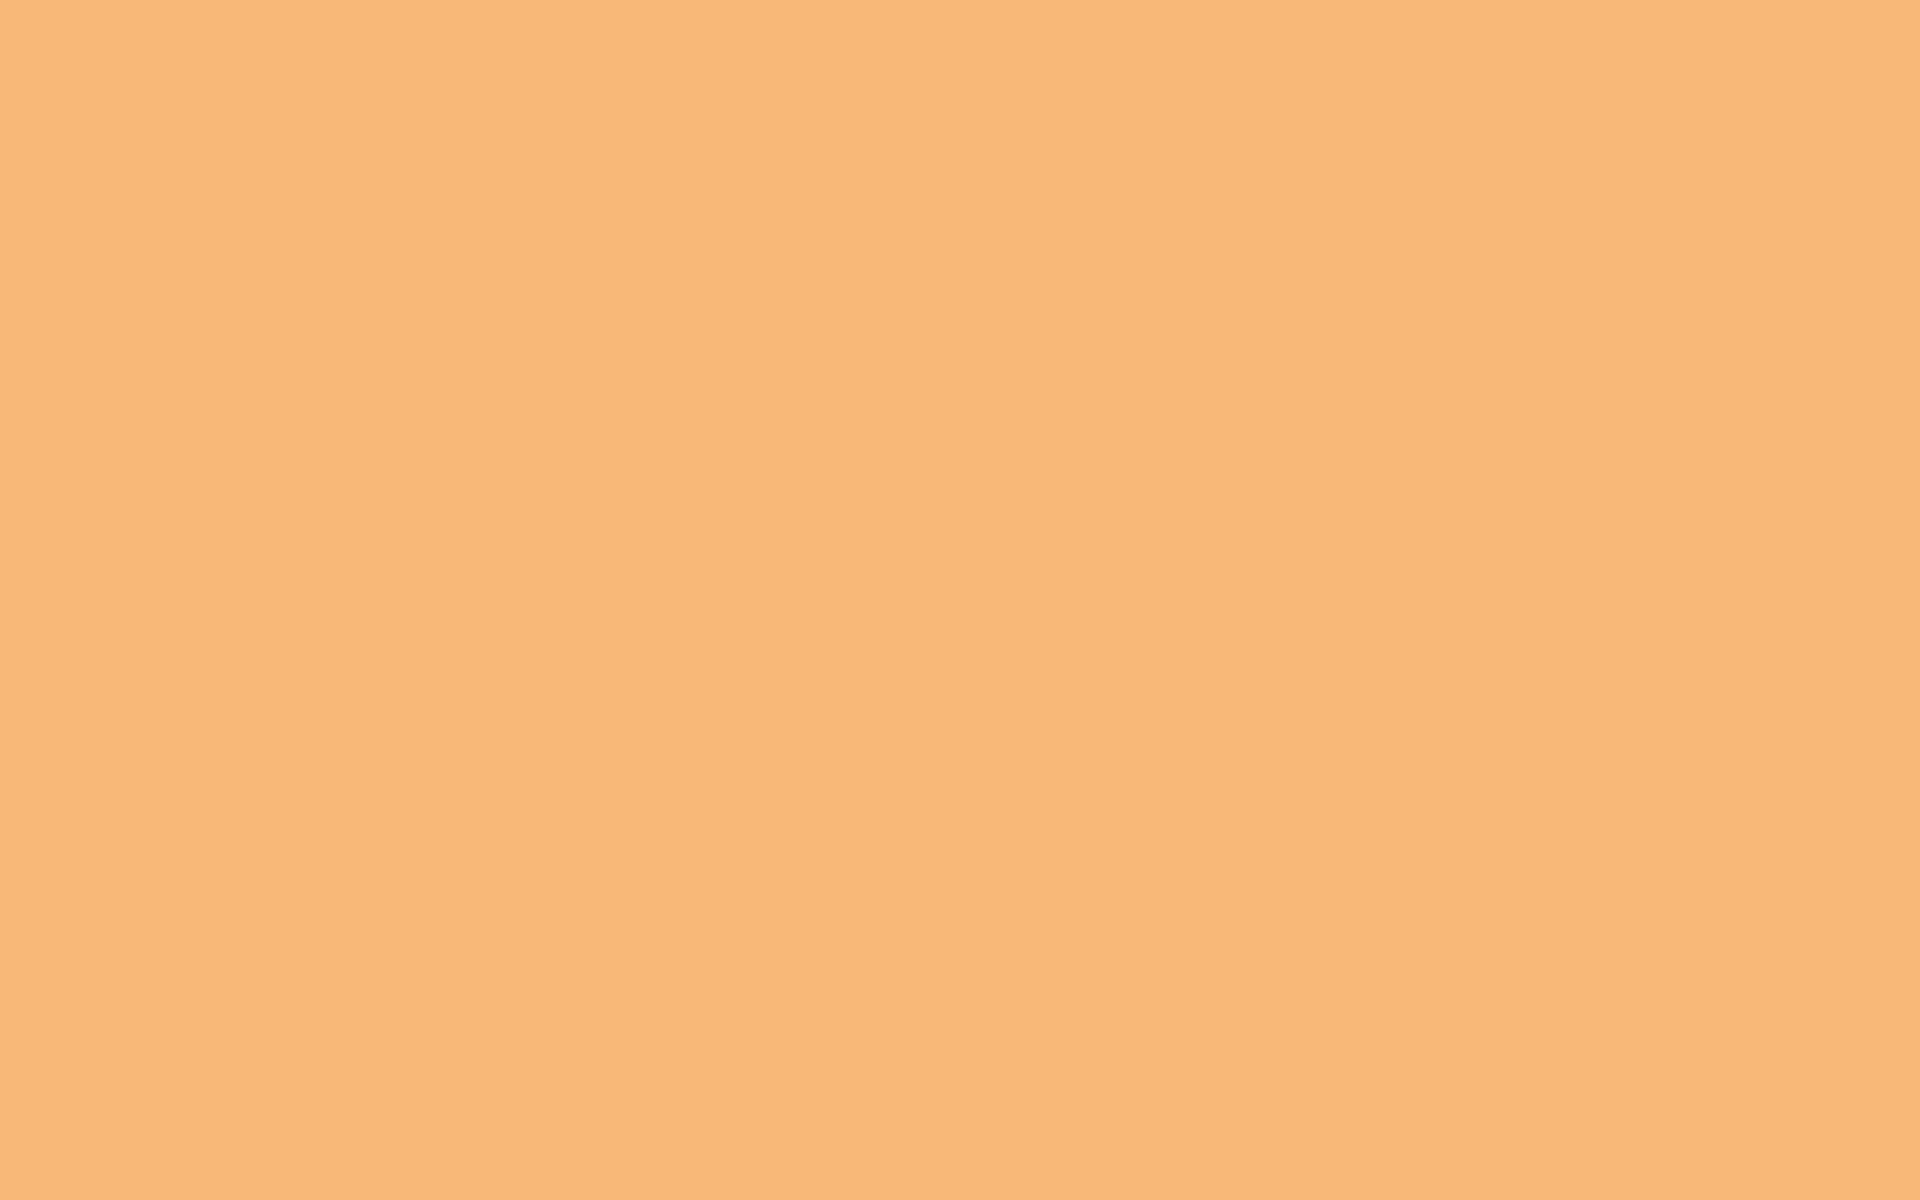 1920x1200 Mellow Apricot Solid Color Background